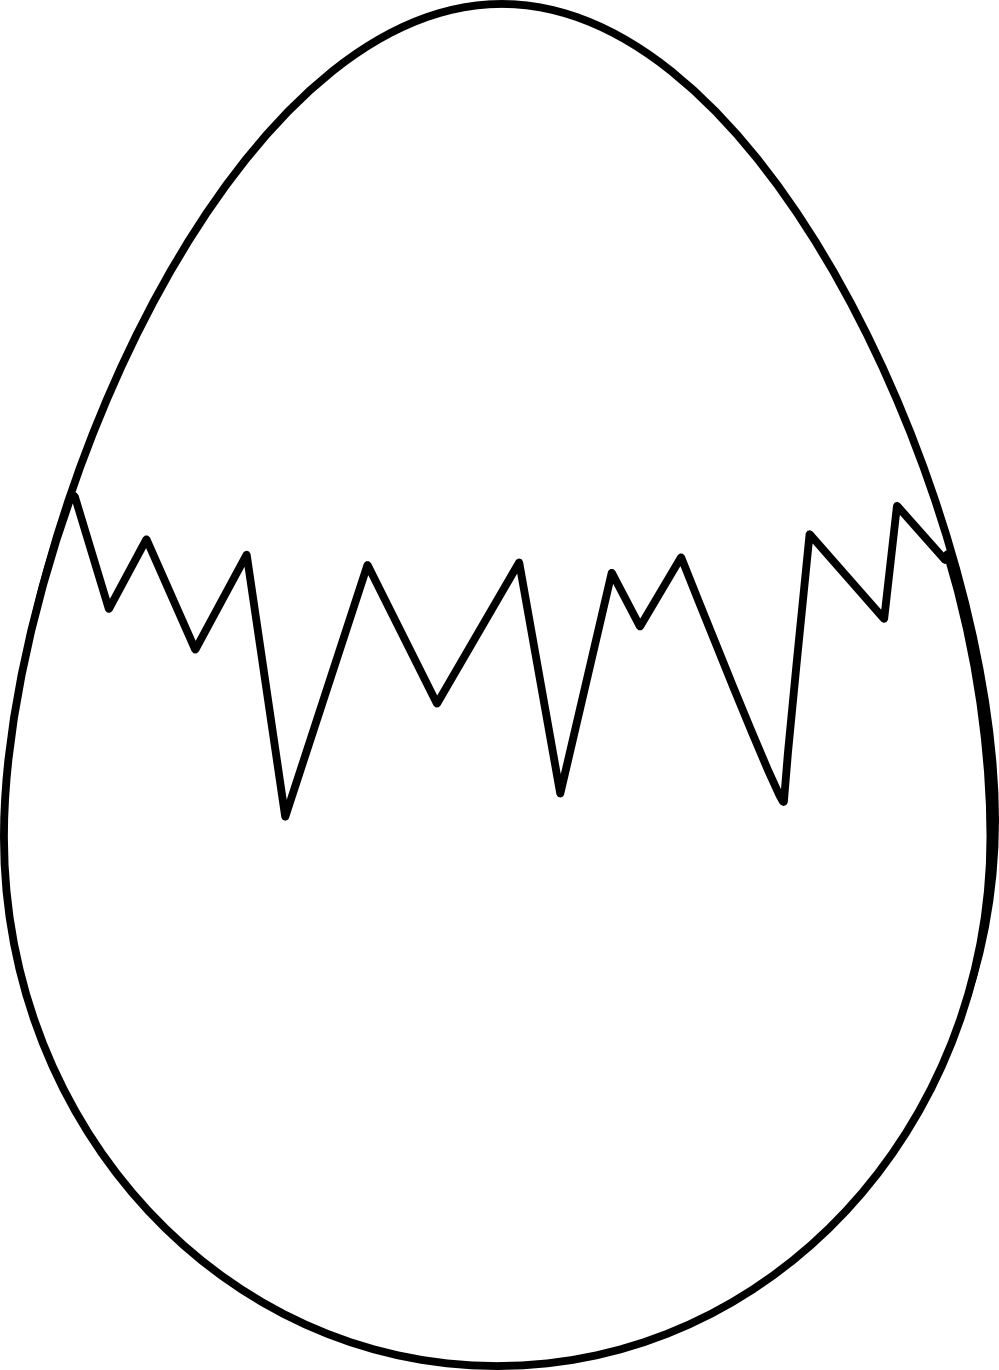 Black And White Of Egg Yolk Clipart - Clipart Suggest